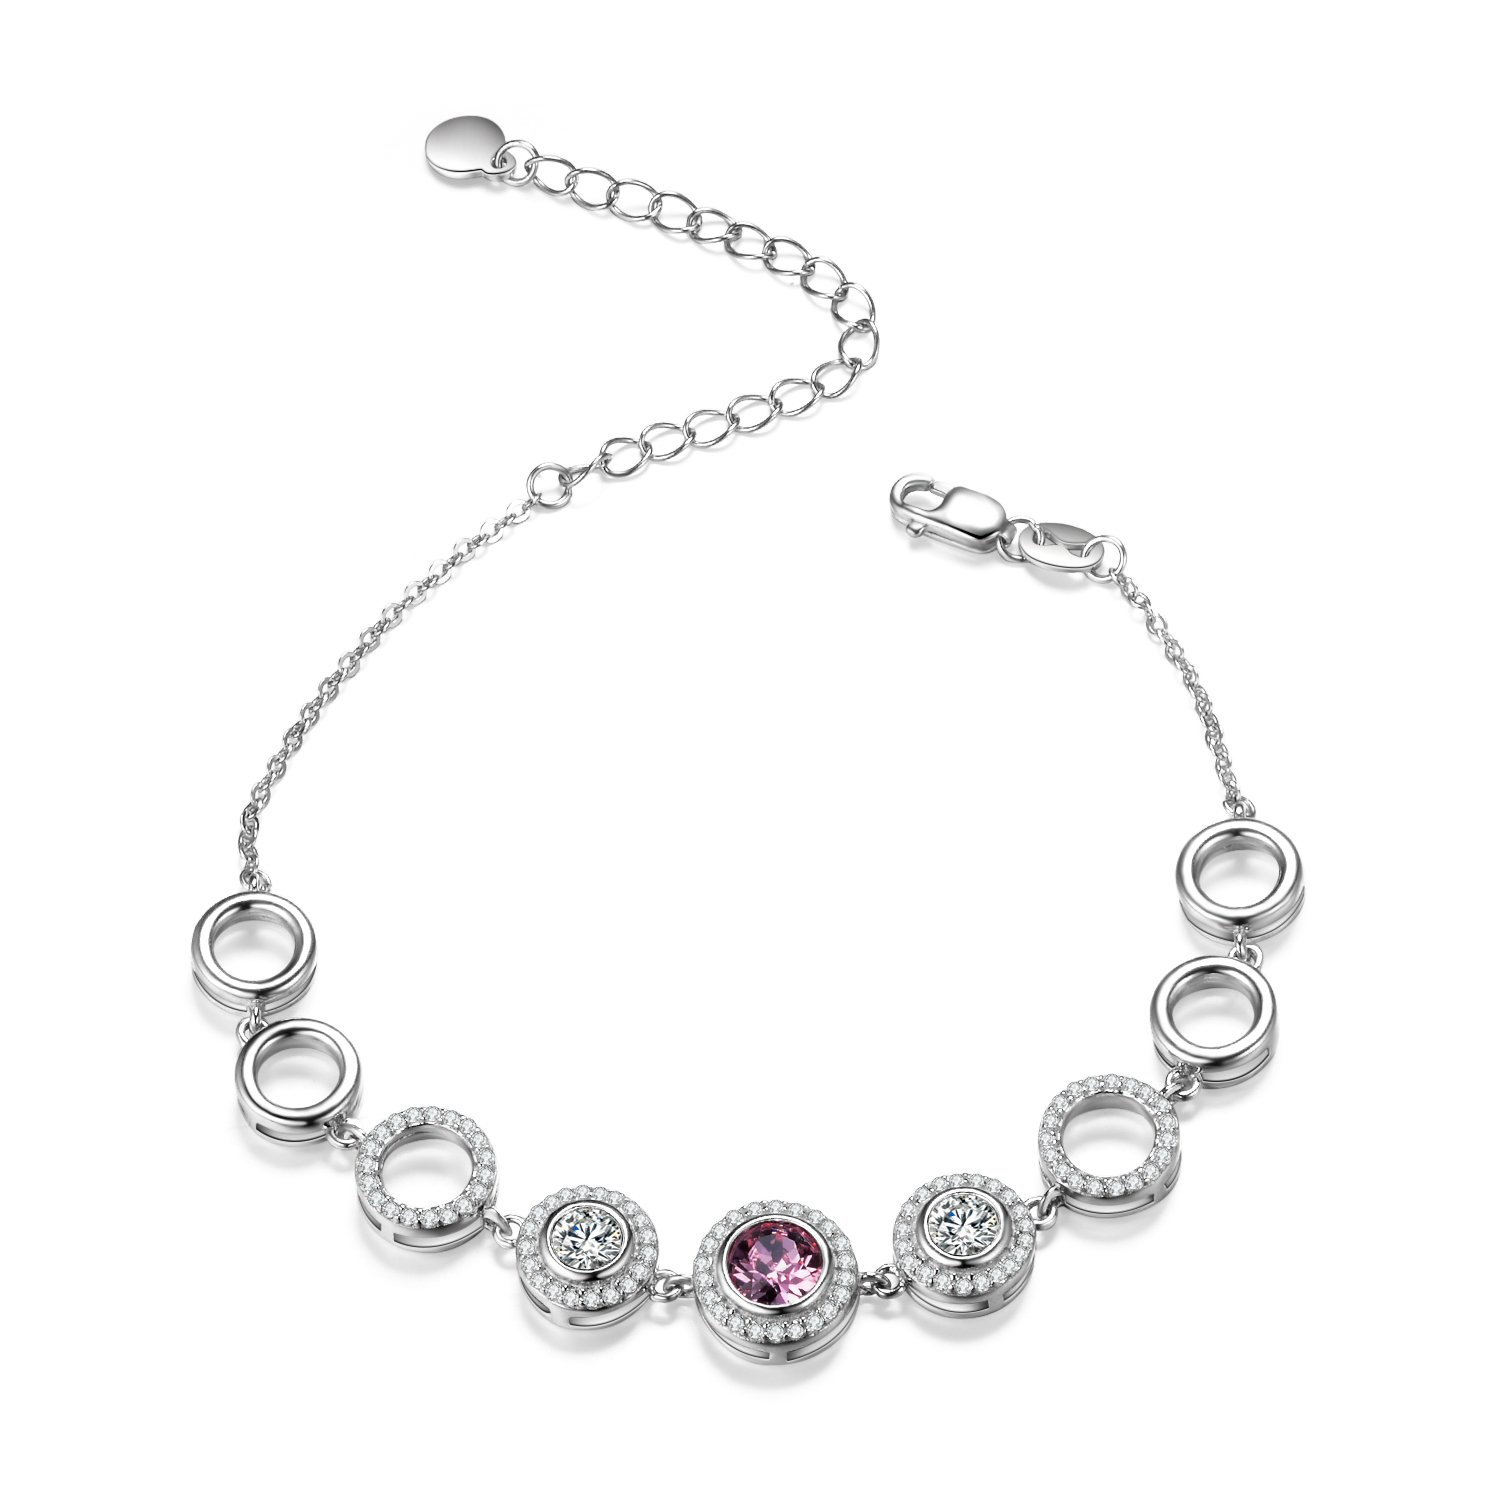 d4dfb8982 Amazon.com: AOBOCO Sterling Silver Circle Link Bracelet Red Round Crystals  Open Chain Adjustable Bracelets with Swarovski Crystal, Gorgeous Gift for  Women ...